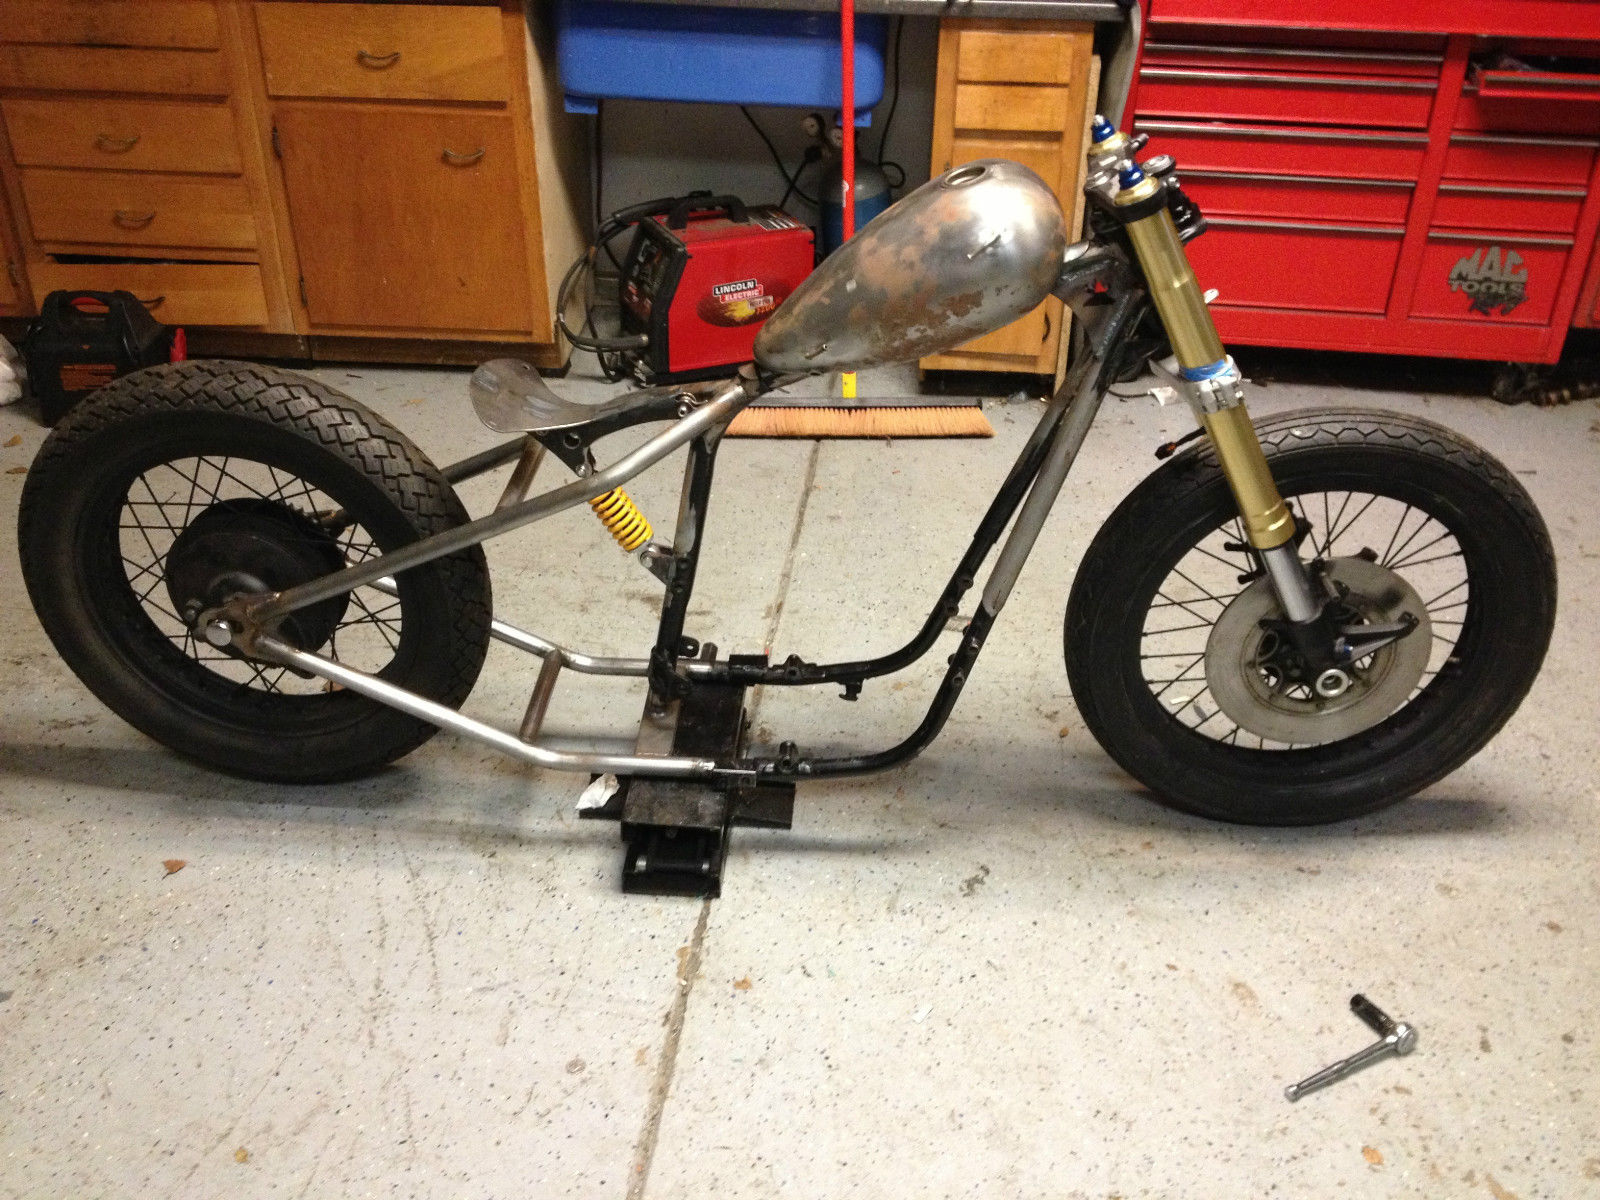 1976 Yamaha XS650 Chopper with Gsxr front end conversion